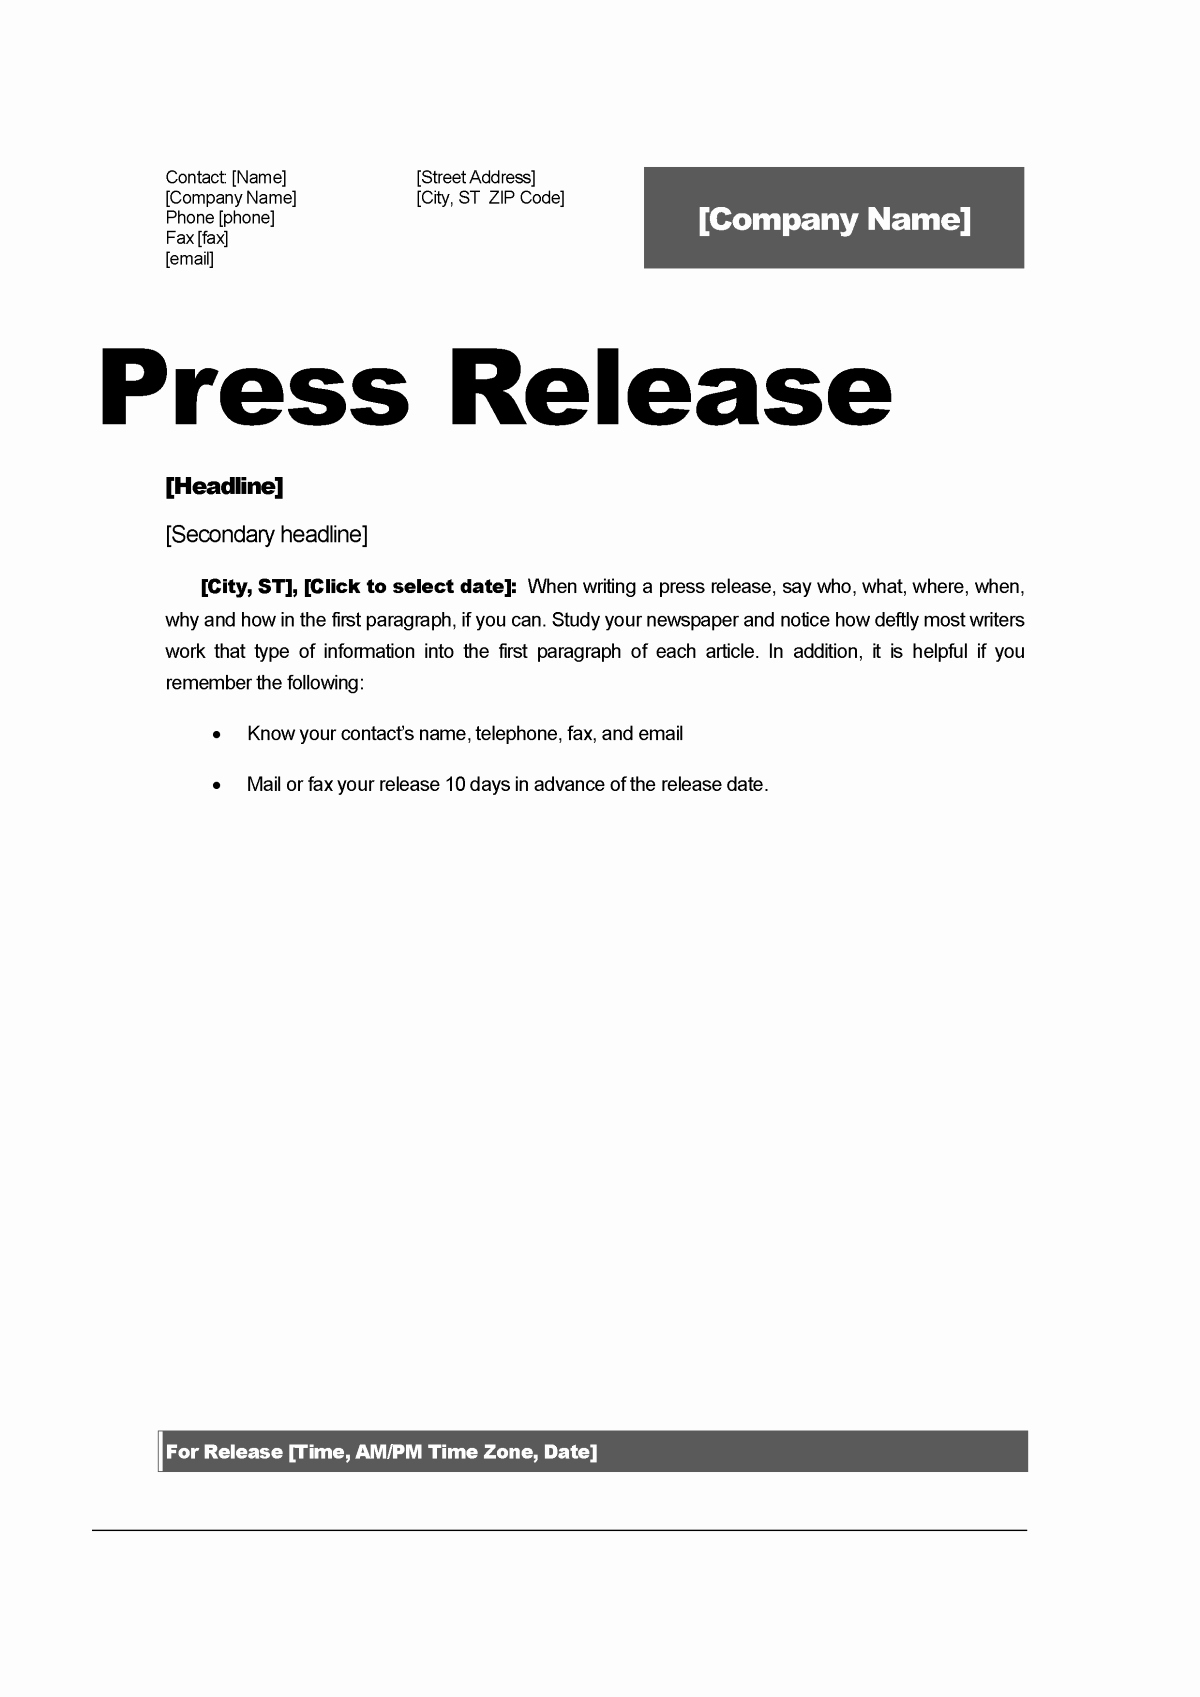 Press Release Sample Template Fresh top 5 Resources to Get Free Press Release Templates Word